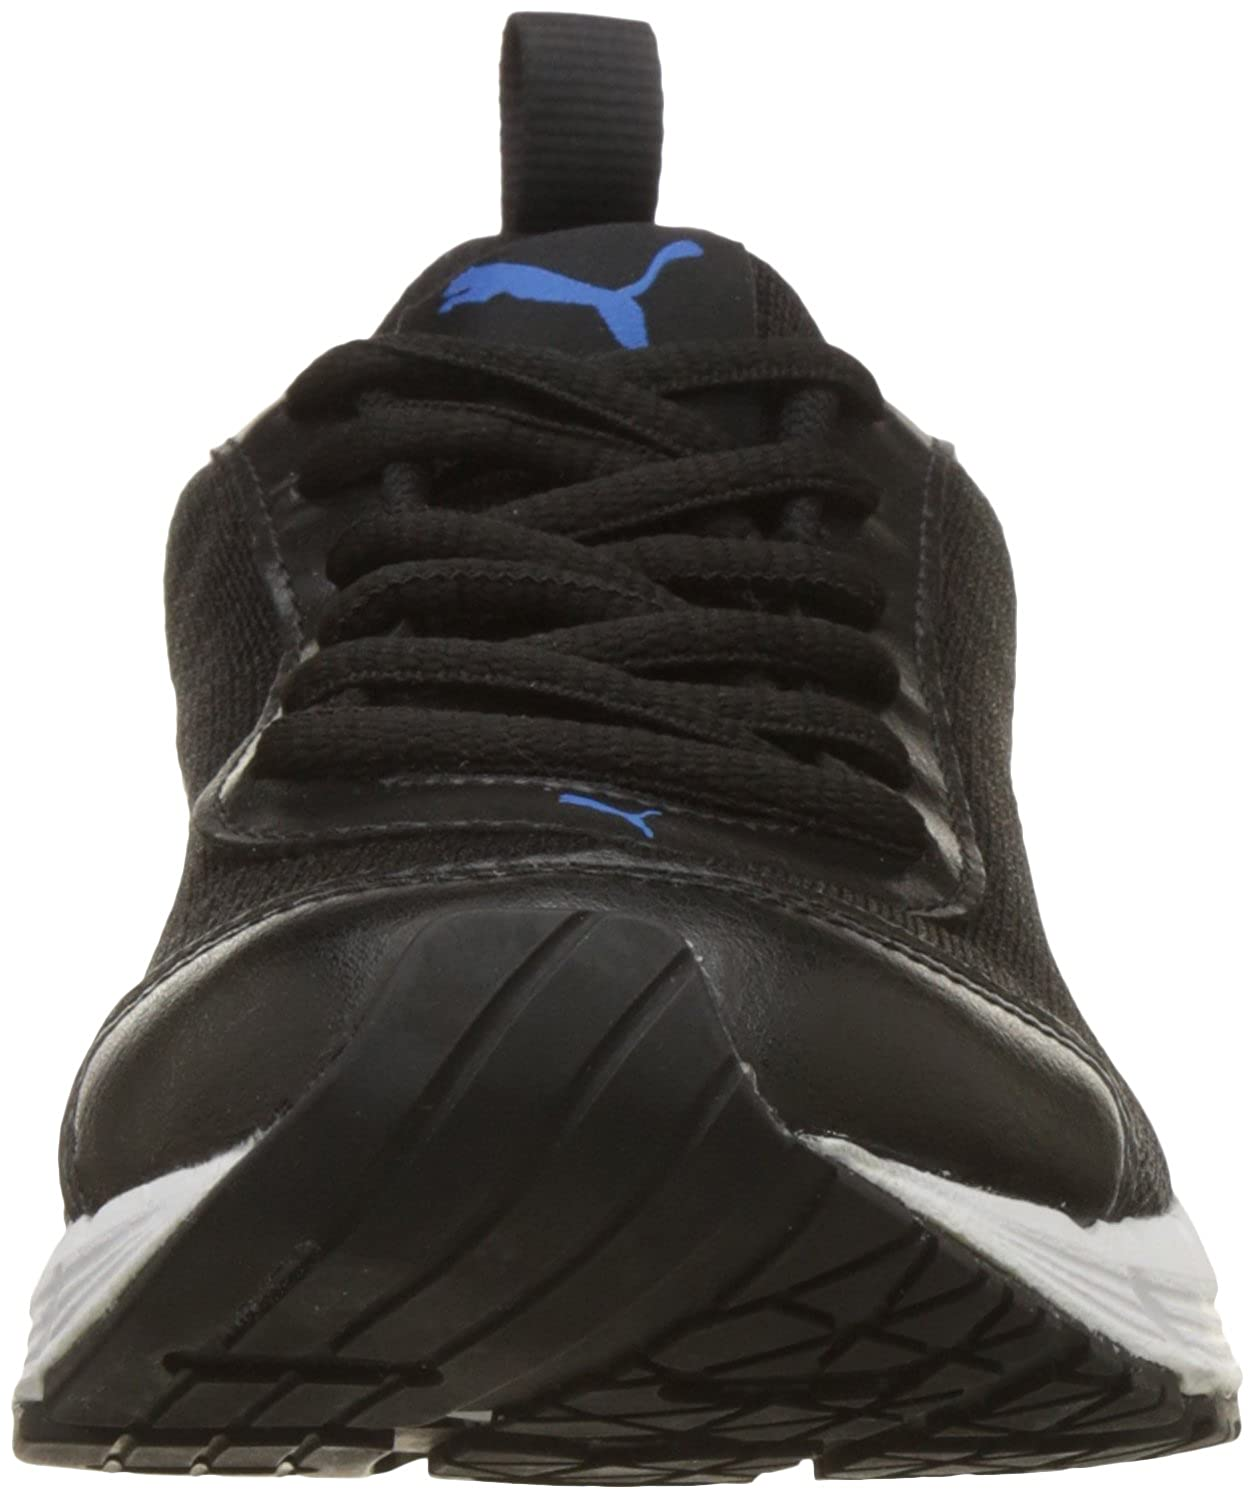 Puma Unisex Proton IDP Sneakers  Buy Online at Low Prices in India -  Amazon.in 2b52331c2